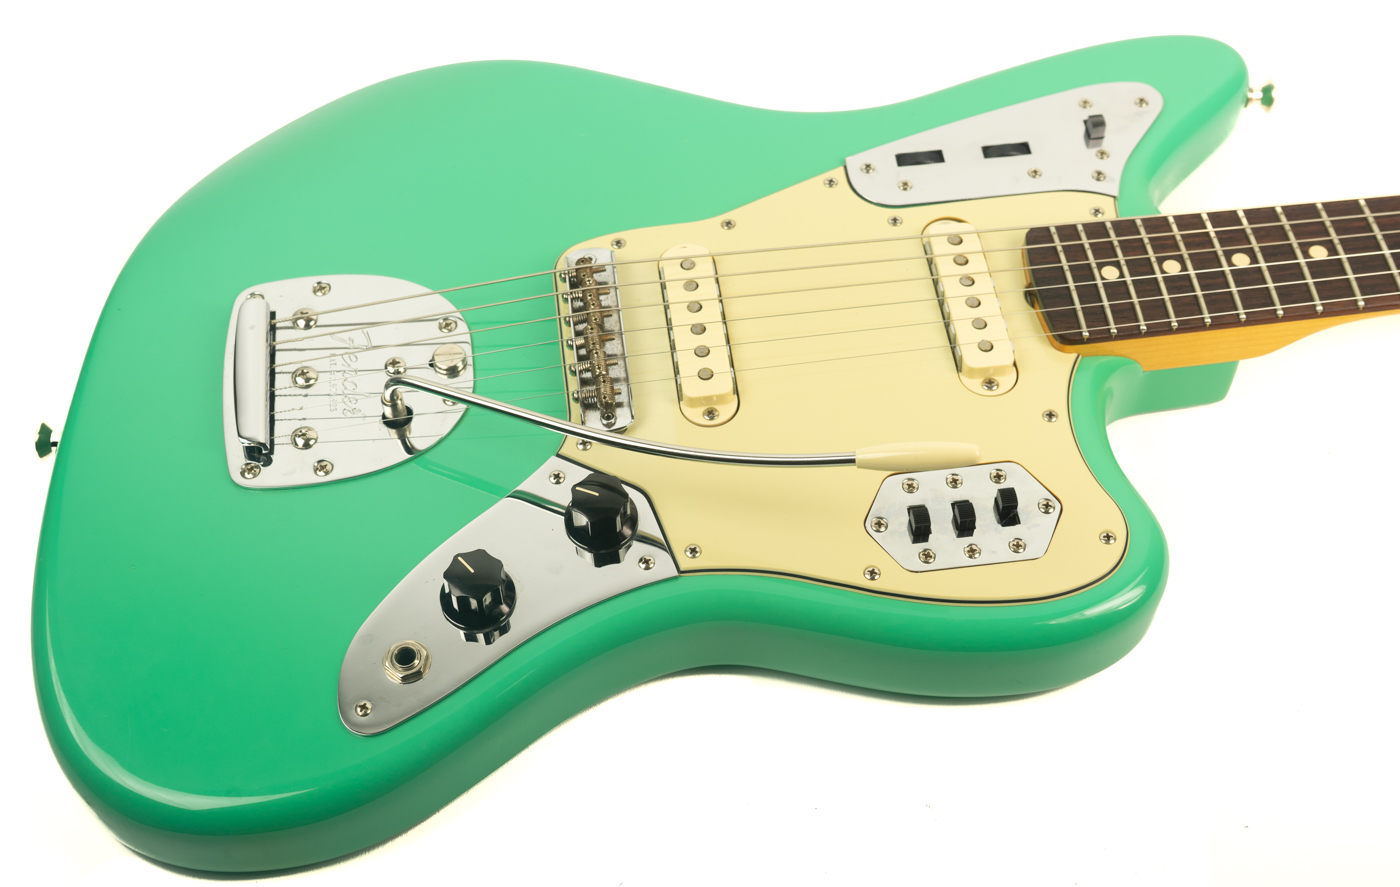 2008 Fender 62 Avri Thin Skin Jaguar Seafoam Green Detail 1